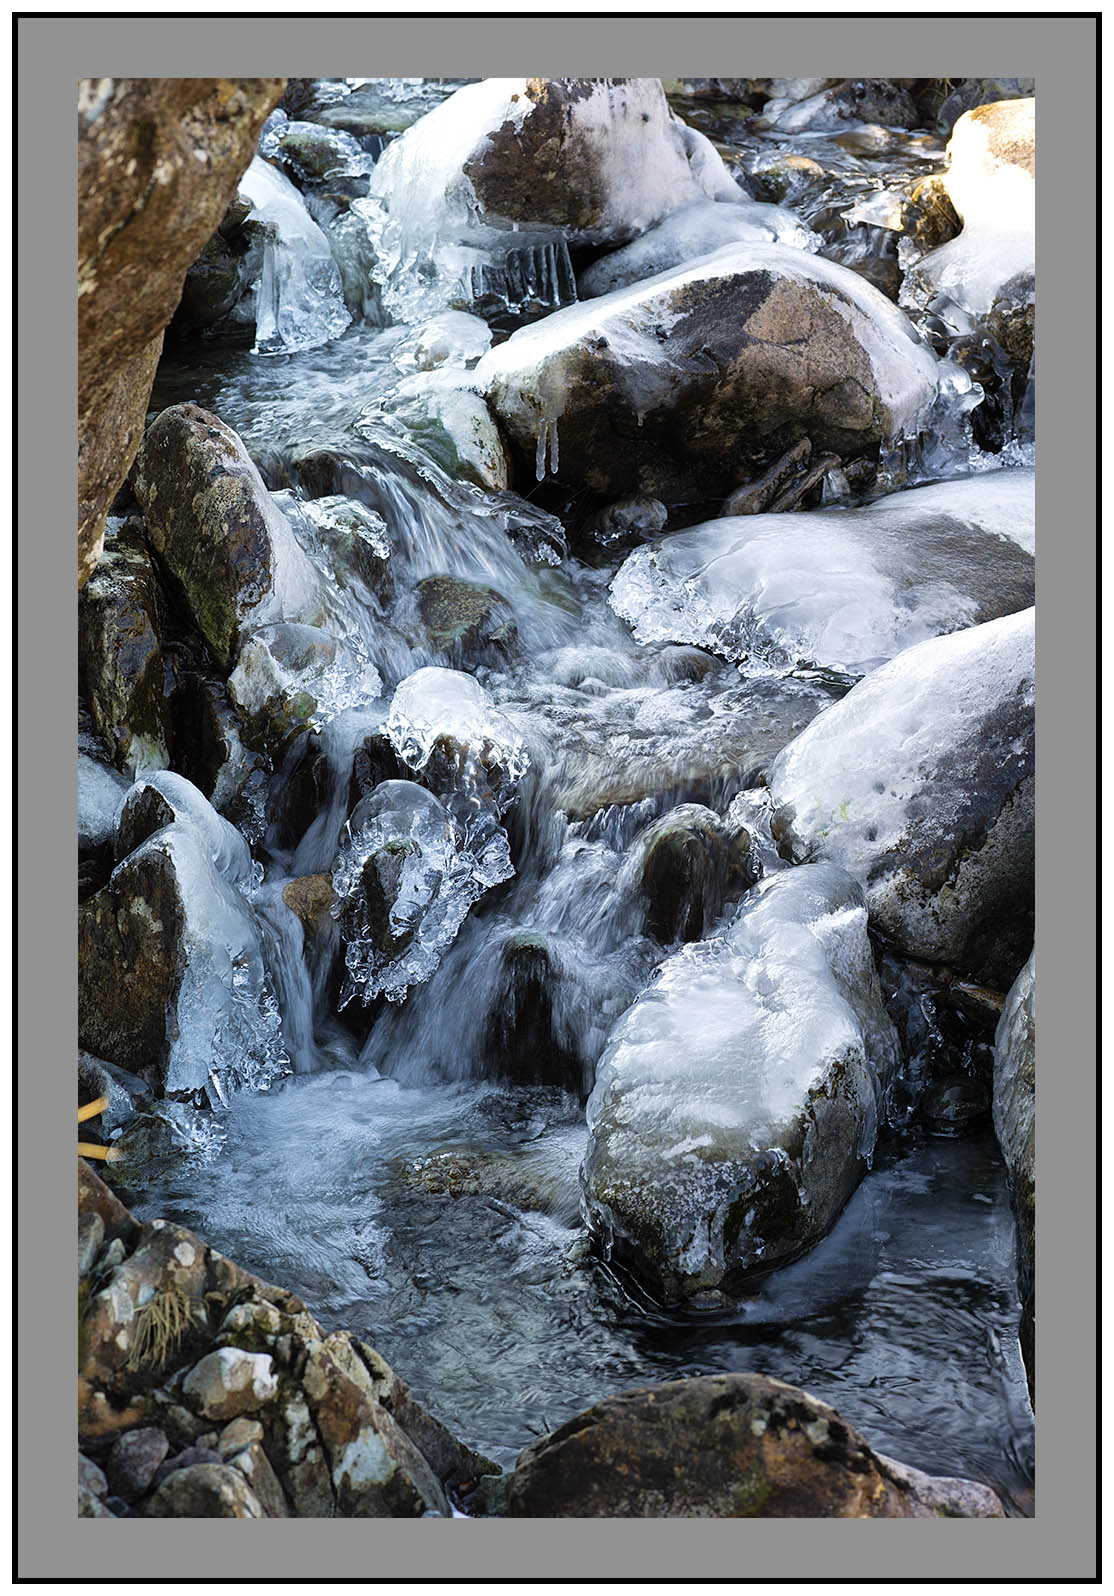 S2015487 Scalehow Beck in winter garb